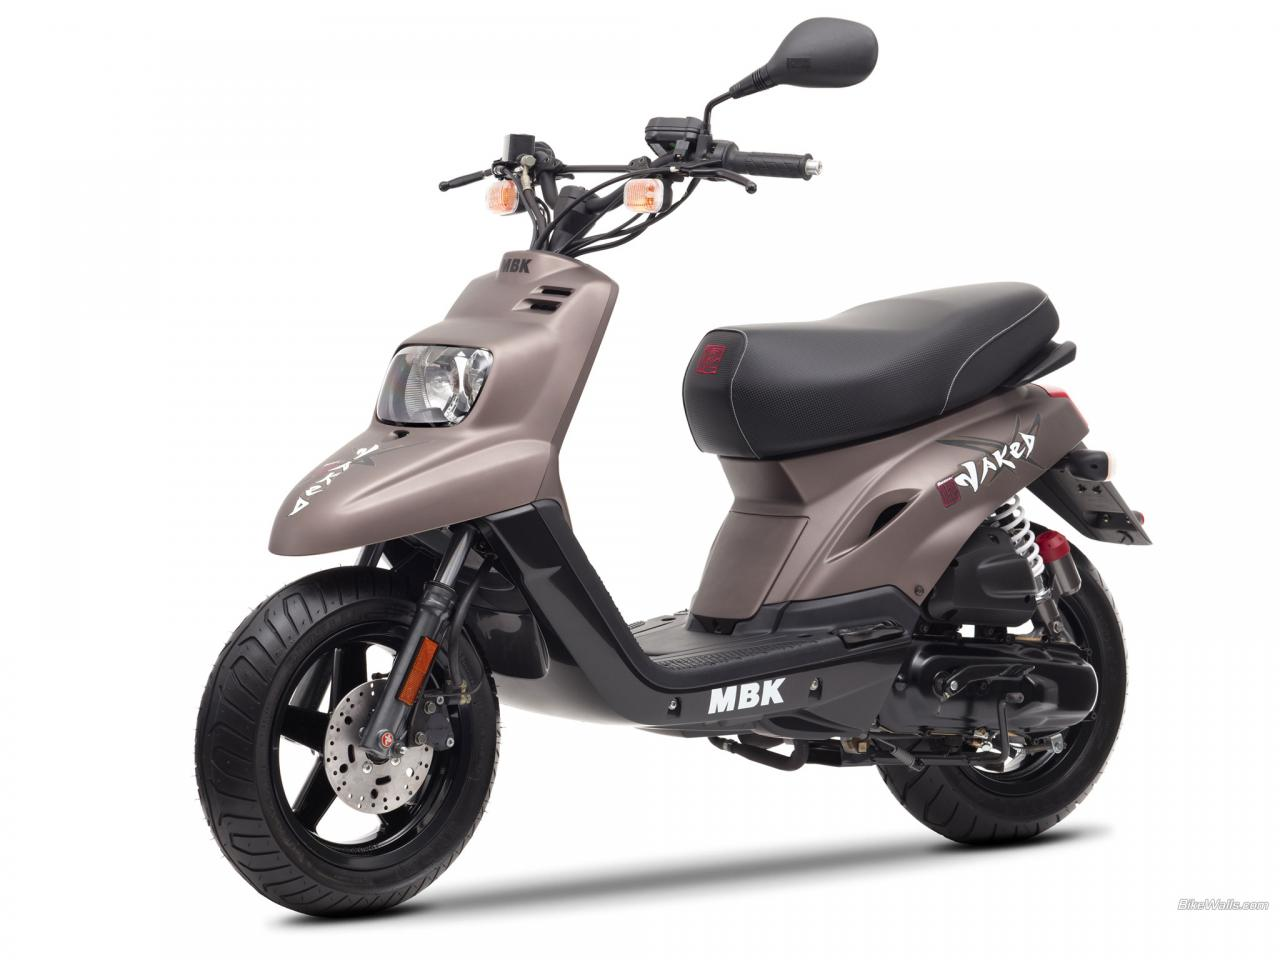 2009 MBK Booster Naked scooter pictures | insurance info